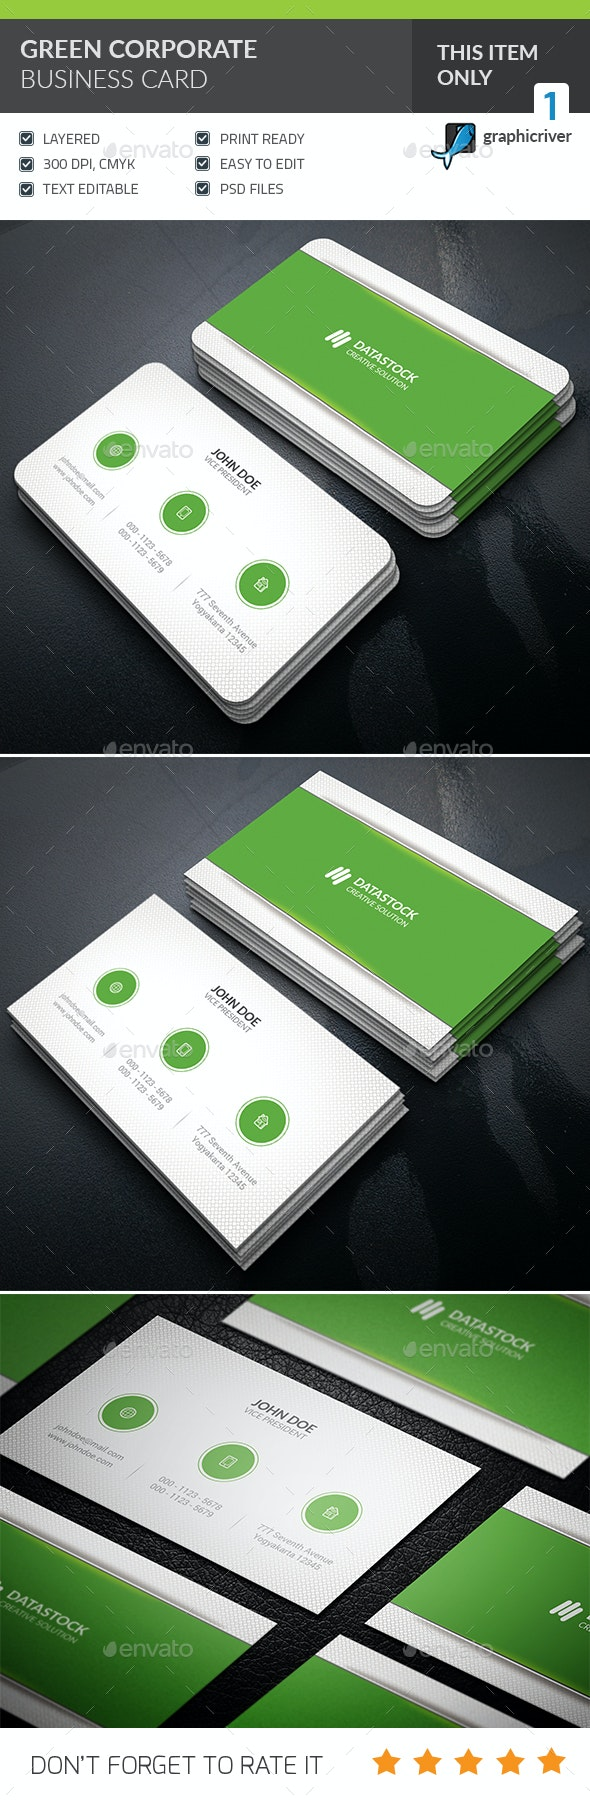 Green Corporate Business Card  - Corporate Business Cards